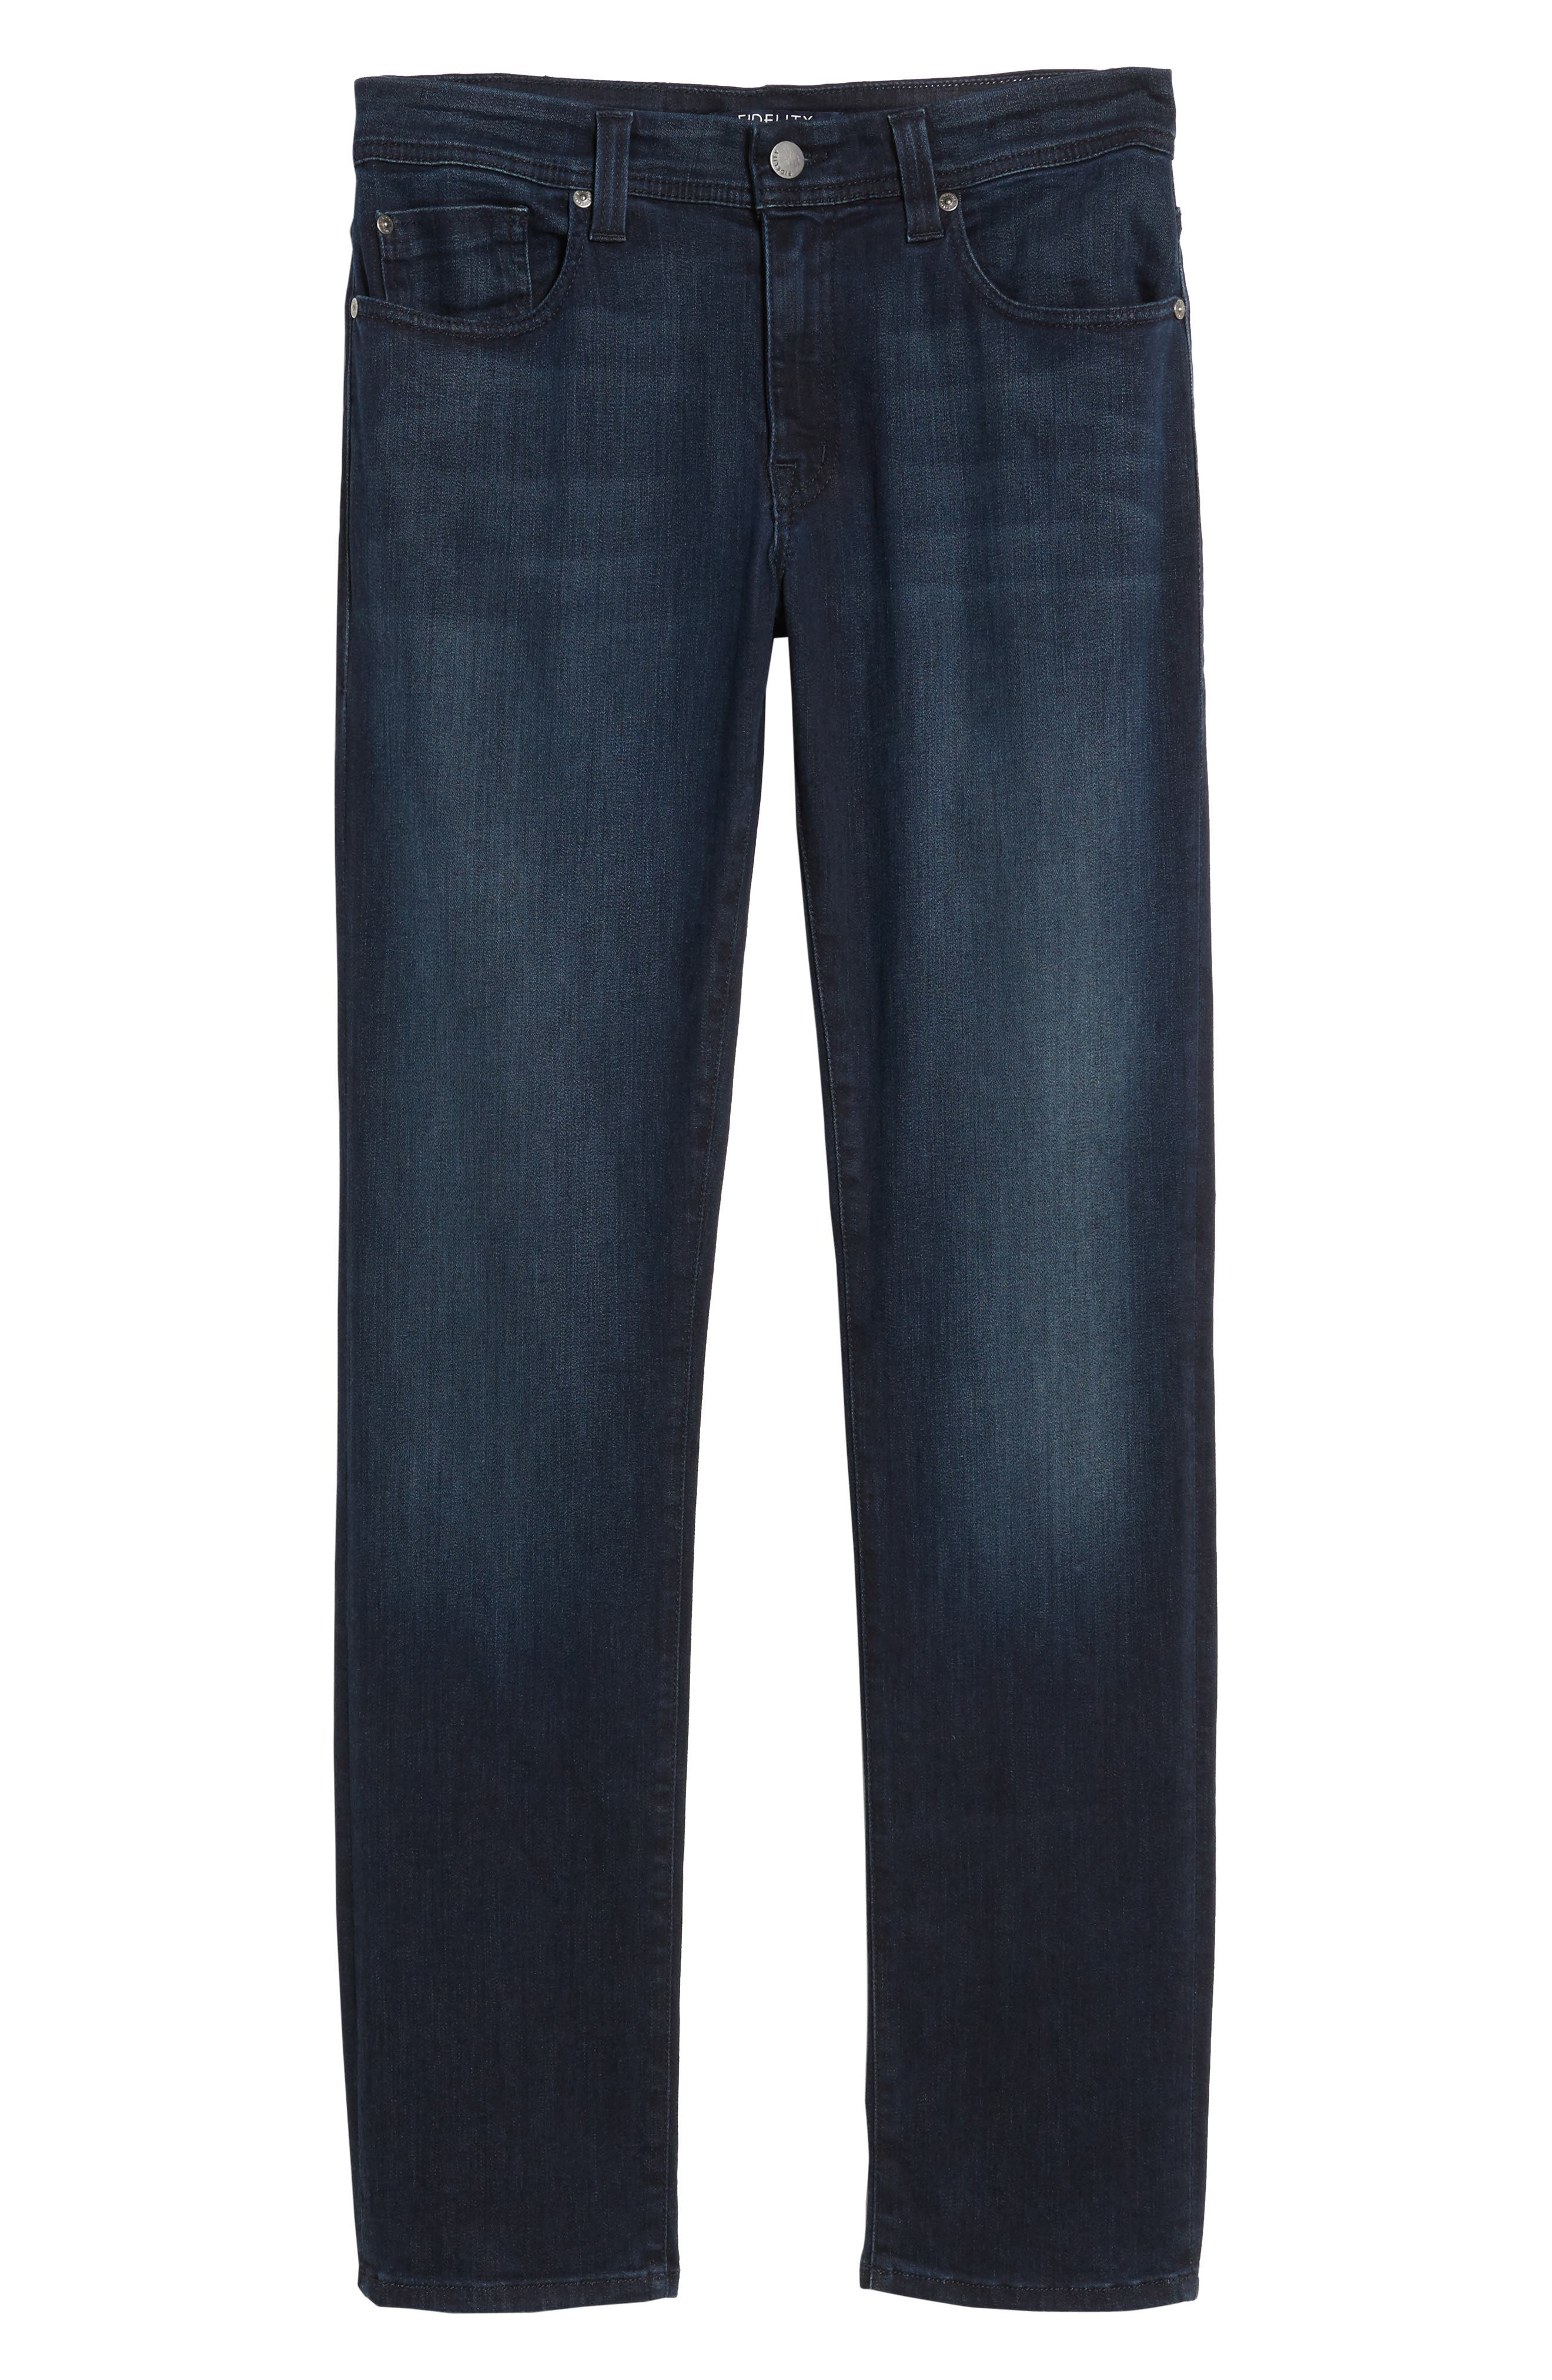 Jimmy Slim Straight Fit Jeans,                             Alternate thumbnail 6, color,                             Fade To Blue